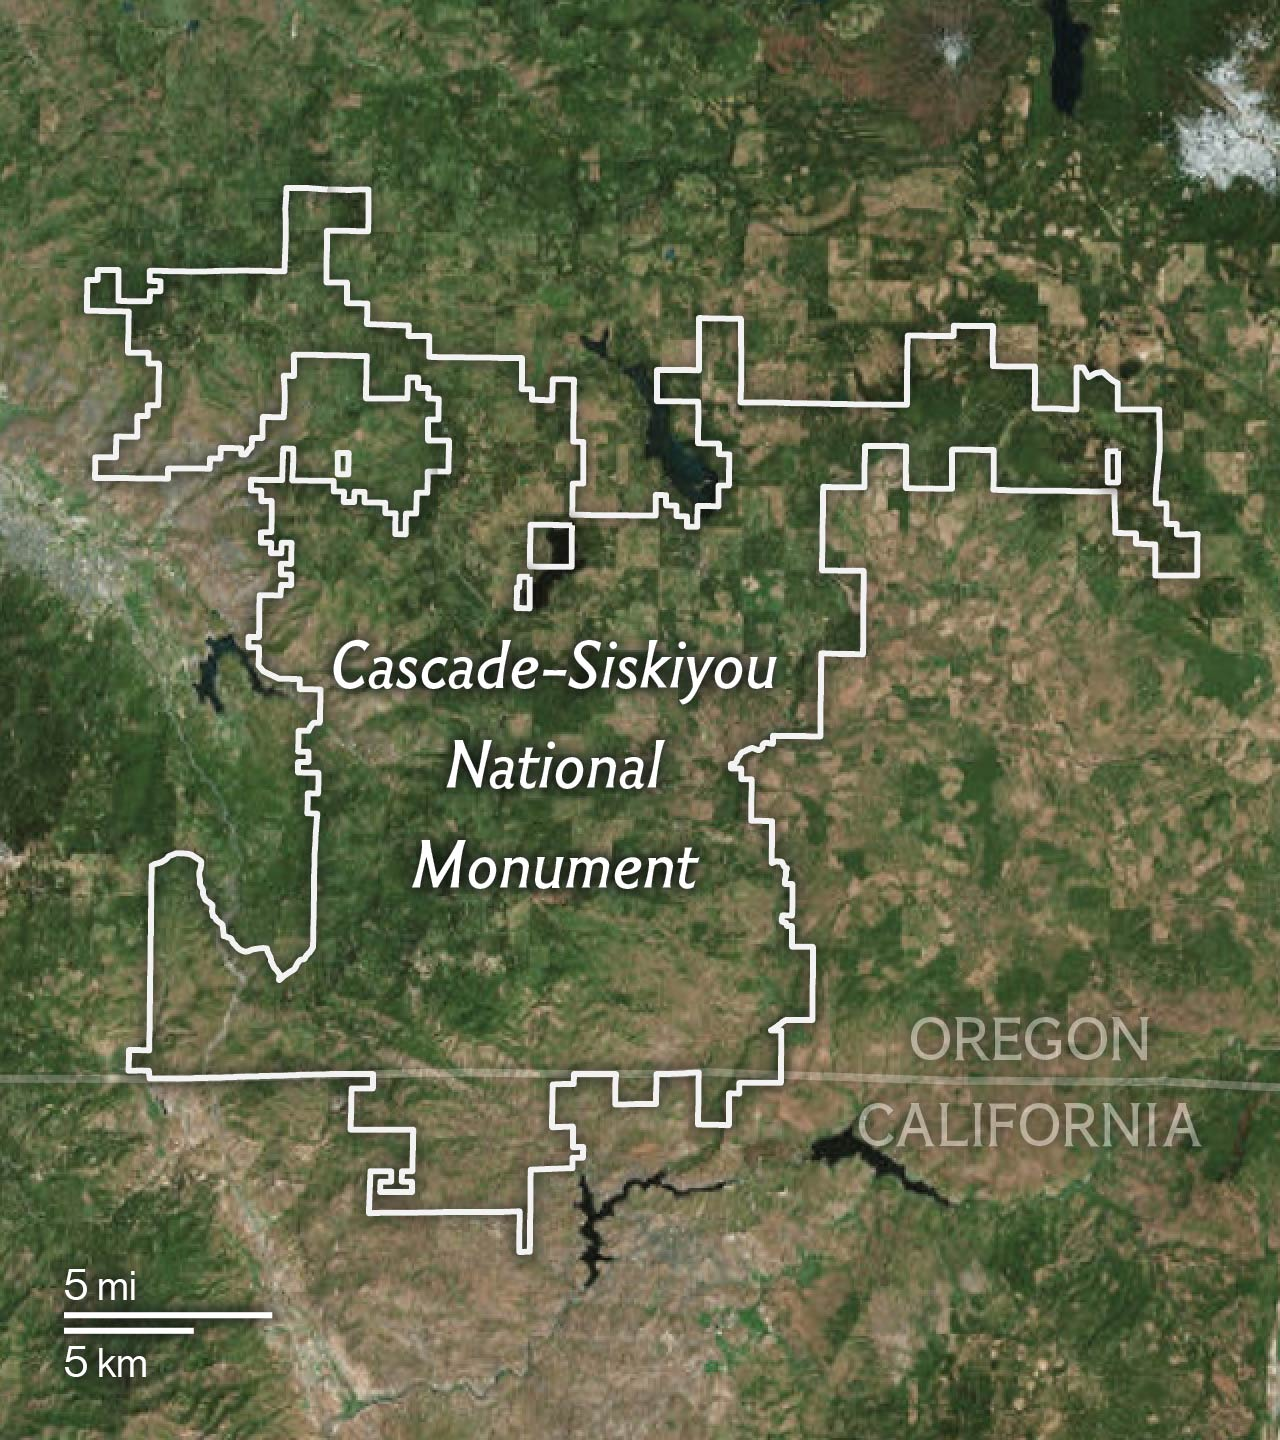 Created In 2000 By President Clinton The 100 000 Acre Monument Straddles The Oregon California Border Region Of The Cascade Range And Protects Habitat For